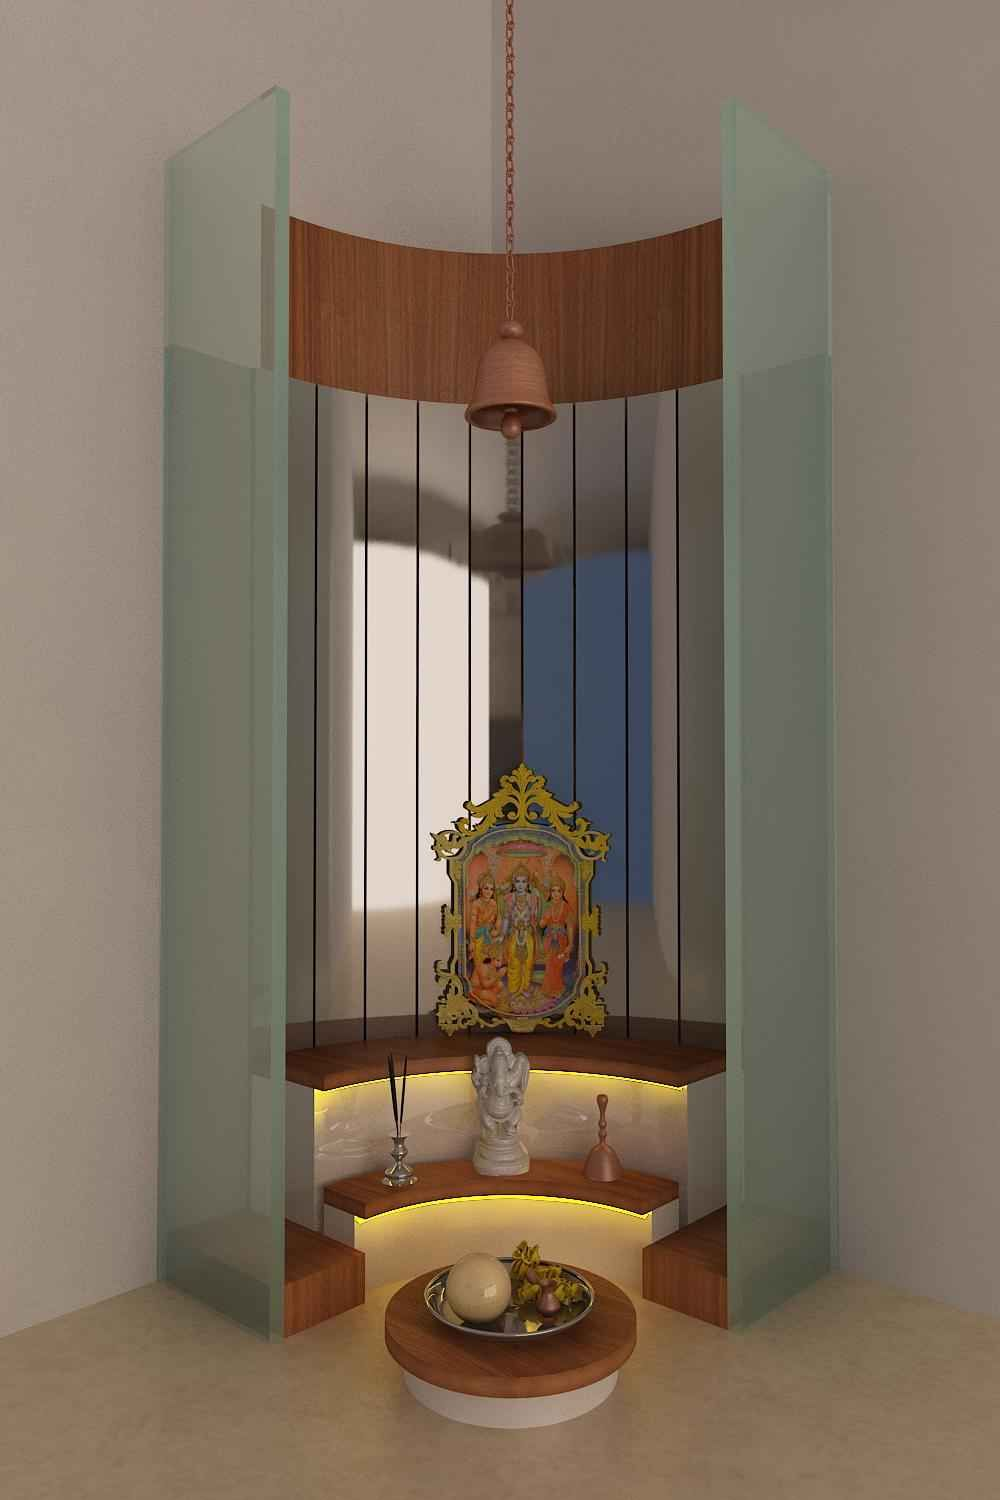 Pooja Room By Kamlesh Maniya, Interior Designer In Surat